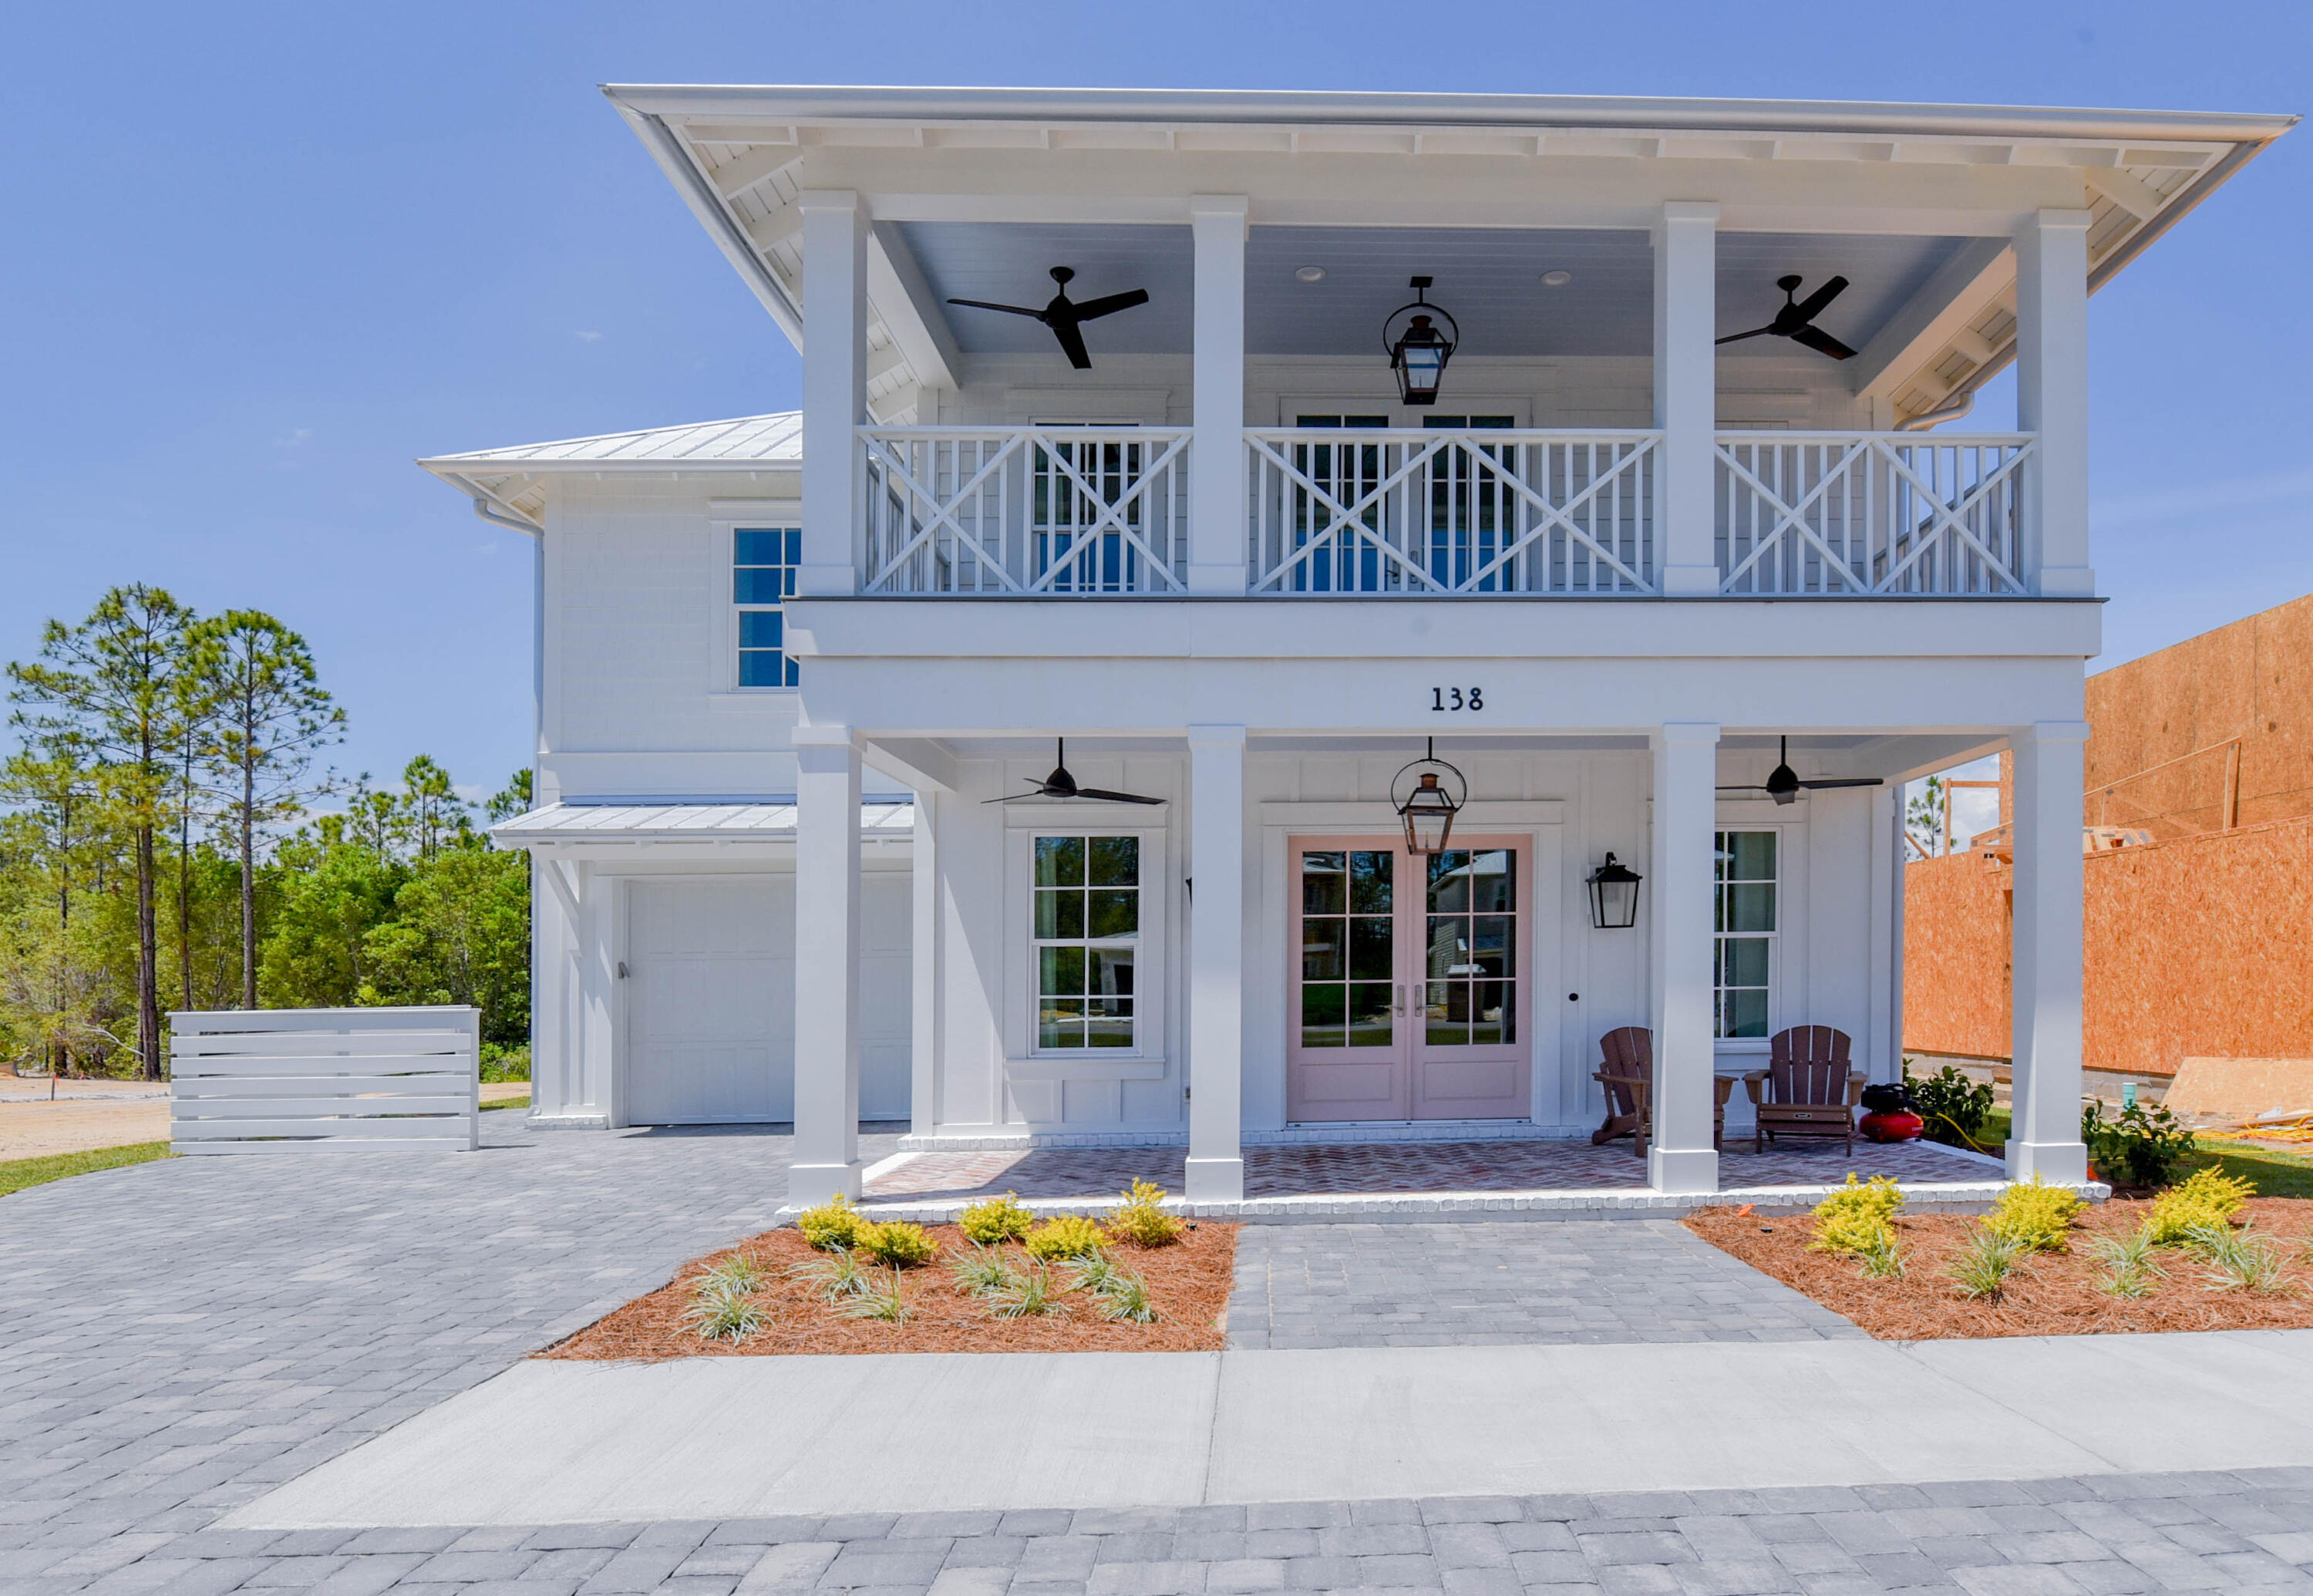 100% Complete - Brand New Construction.  Short walk, bike ride, or drive to multiple beach access points. The Cottage Grove Community delivers luxury coastal living with peace and privacy.  Nestled 1 mile off 30a and 1 mile from Hwy 98.  This gated community DOES NOT ALLOW short term rentals!  The exceptional open floor plan provides ample space to entertain and relax.  Do you desire quality?  This home has just that: 2X6 Construction, KitchenAid appliances, brick and fiber cement siding, quartz countertops, engineered hardwoods throughout, cabinets have soft close drawer and doors as well as go to the ceiling, crown molding, large bar with beverage refrigerator, 10' ceilings, 8' doors, and so much more. Screened in back patio wired for your TV.Community pool, cabana, BBQ grill